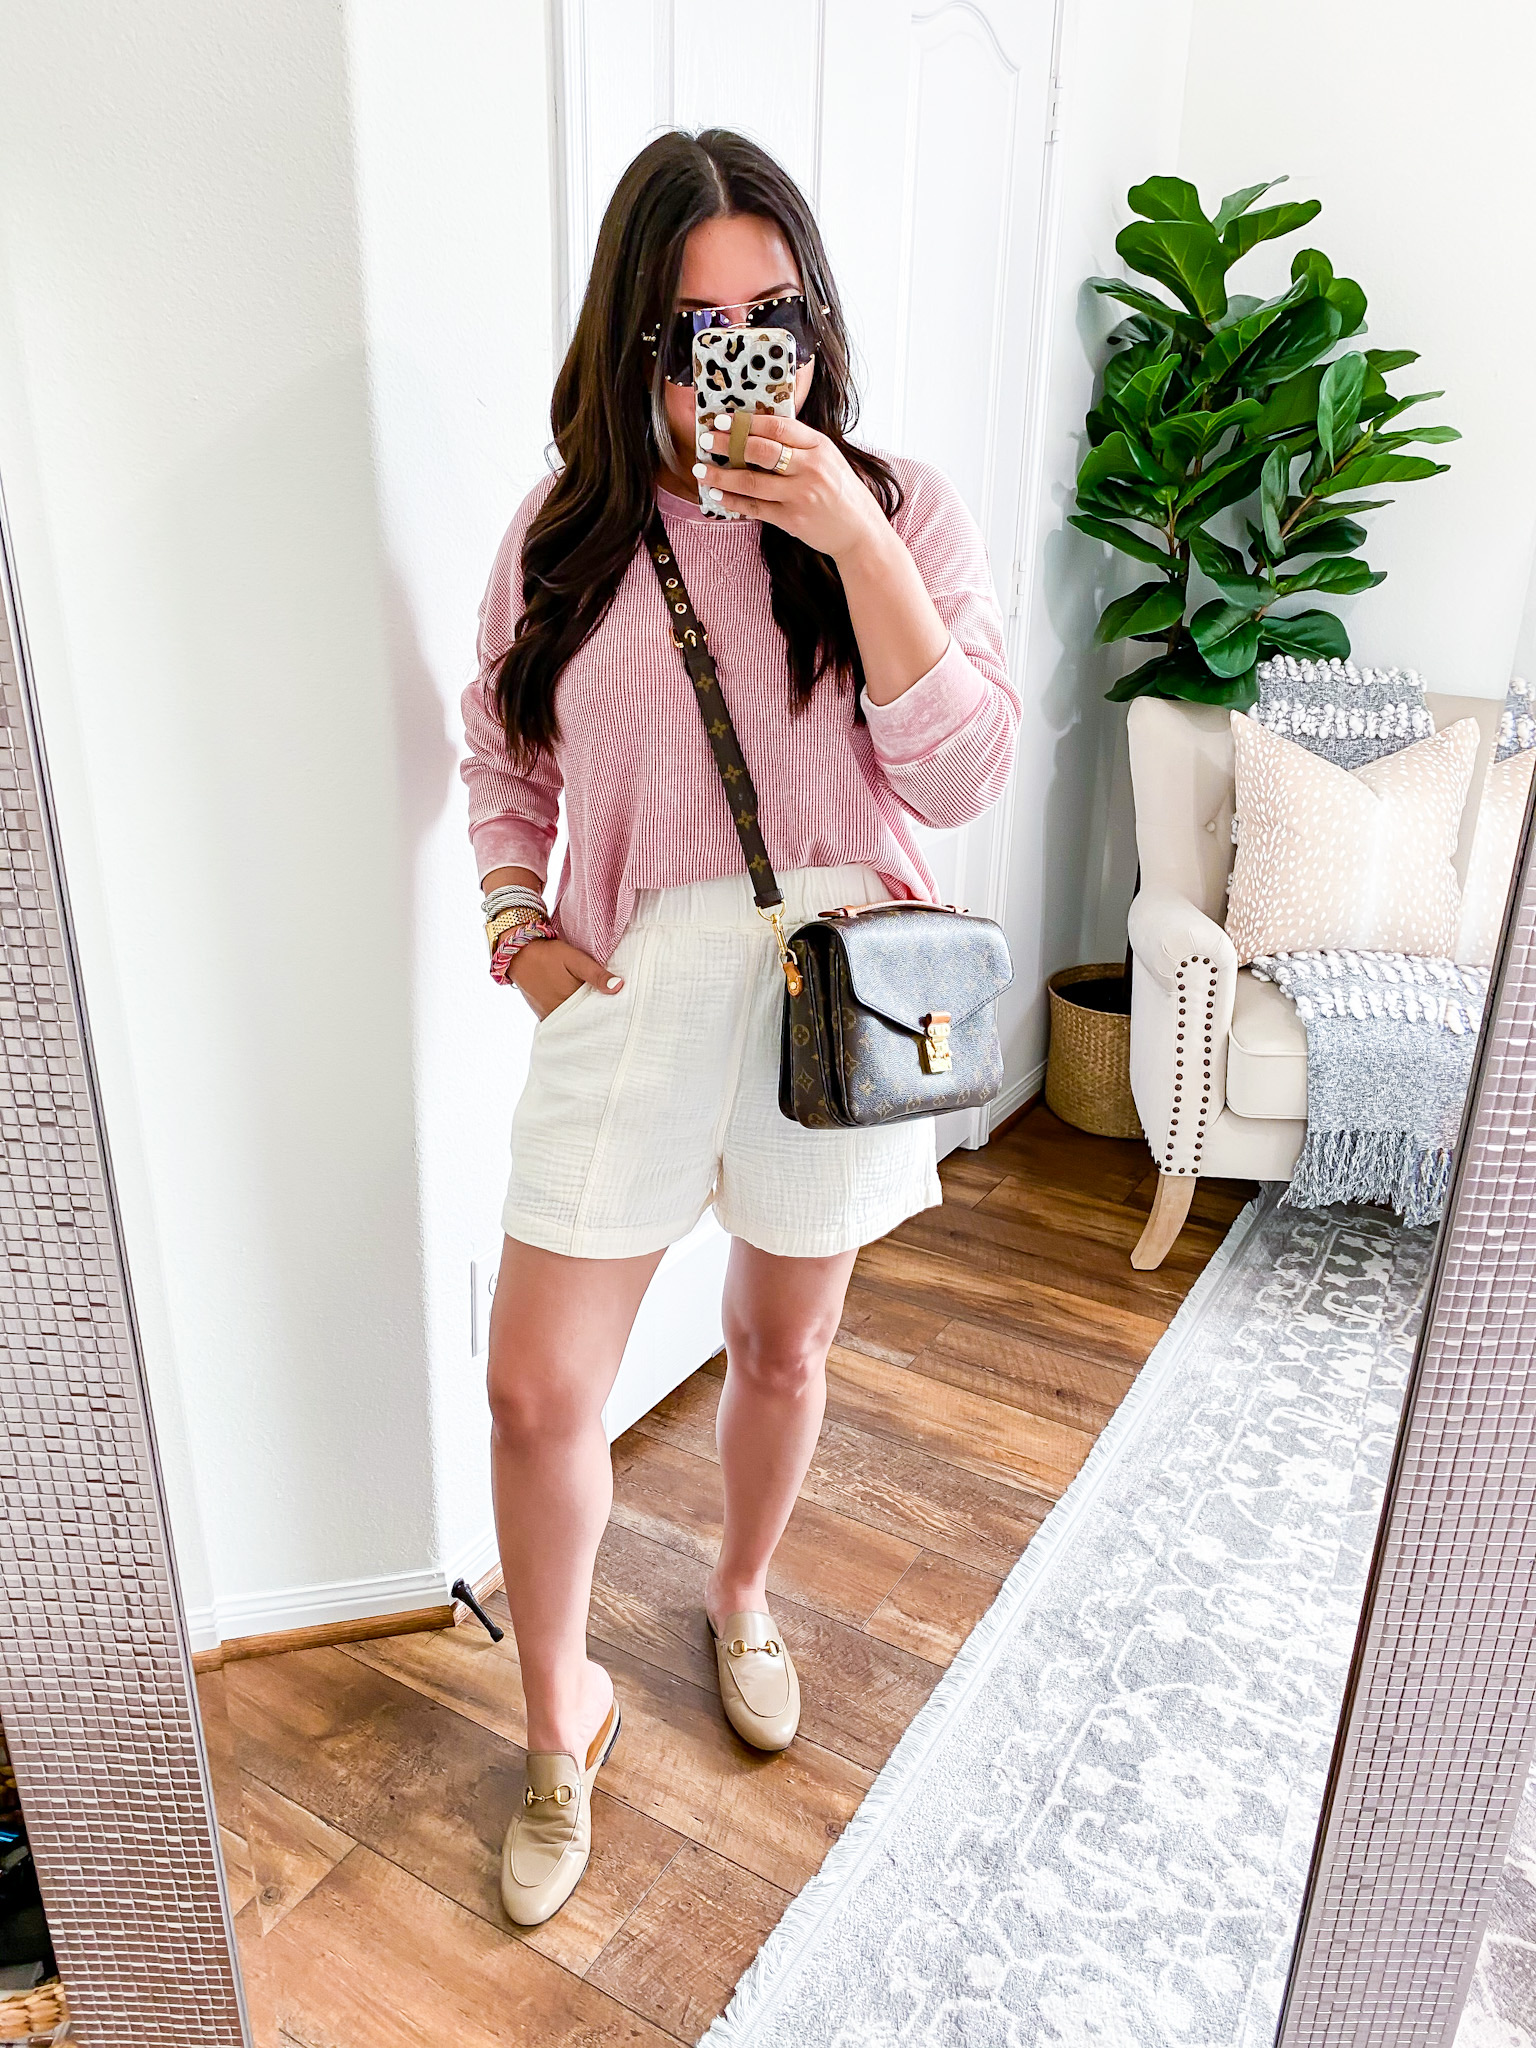 Houston lifestyle and fashion blogger LuxMommy sharing outfits of the day